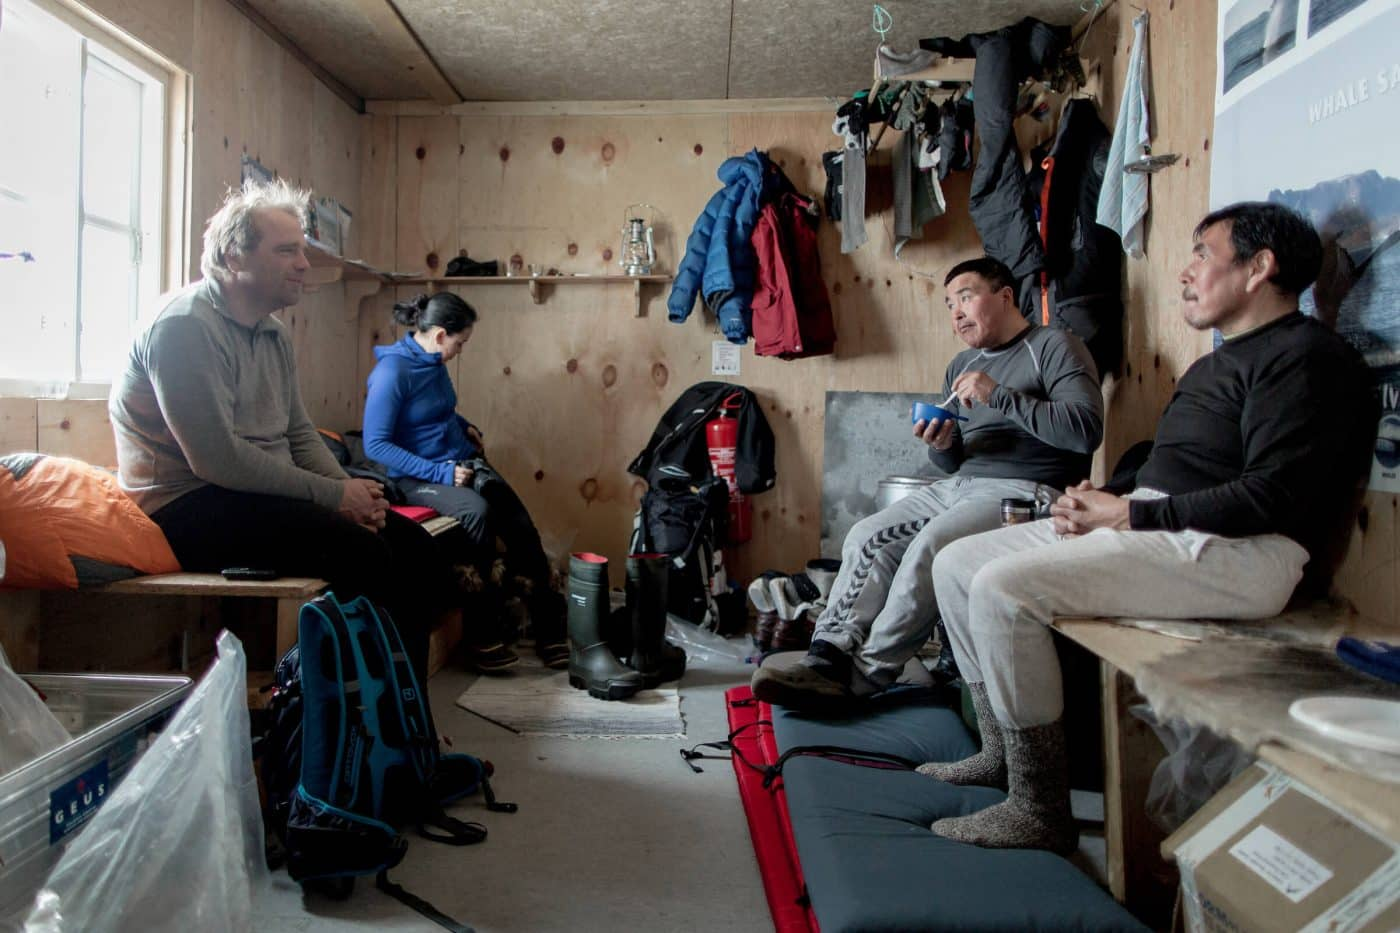 Dog mushers in the Travellodge Greenland hut near Sermilik in East Greenland. By Mads Pihl